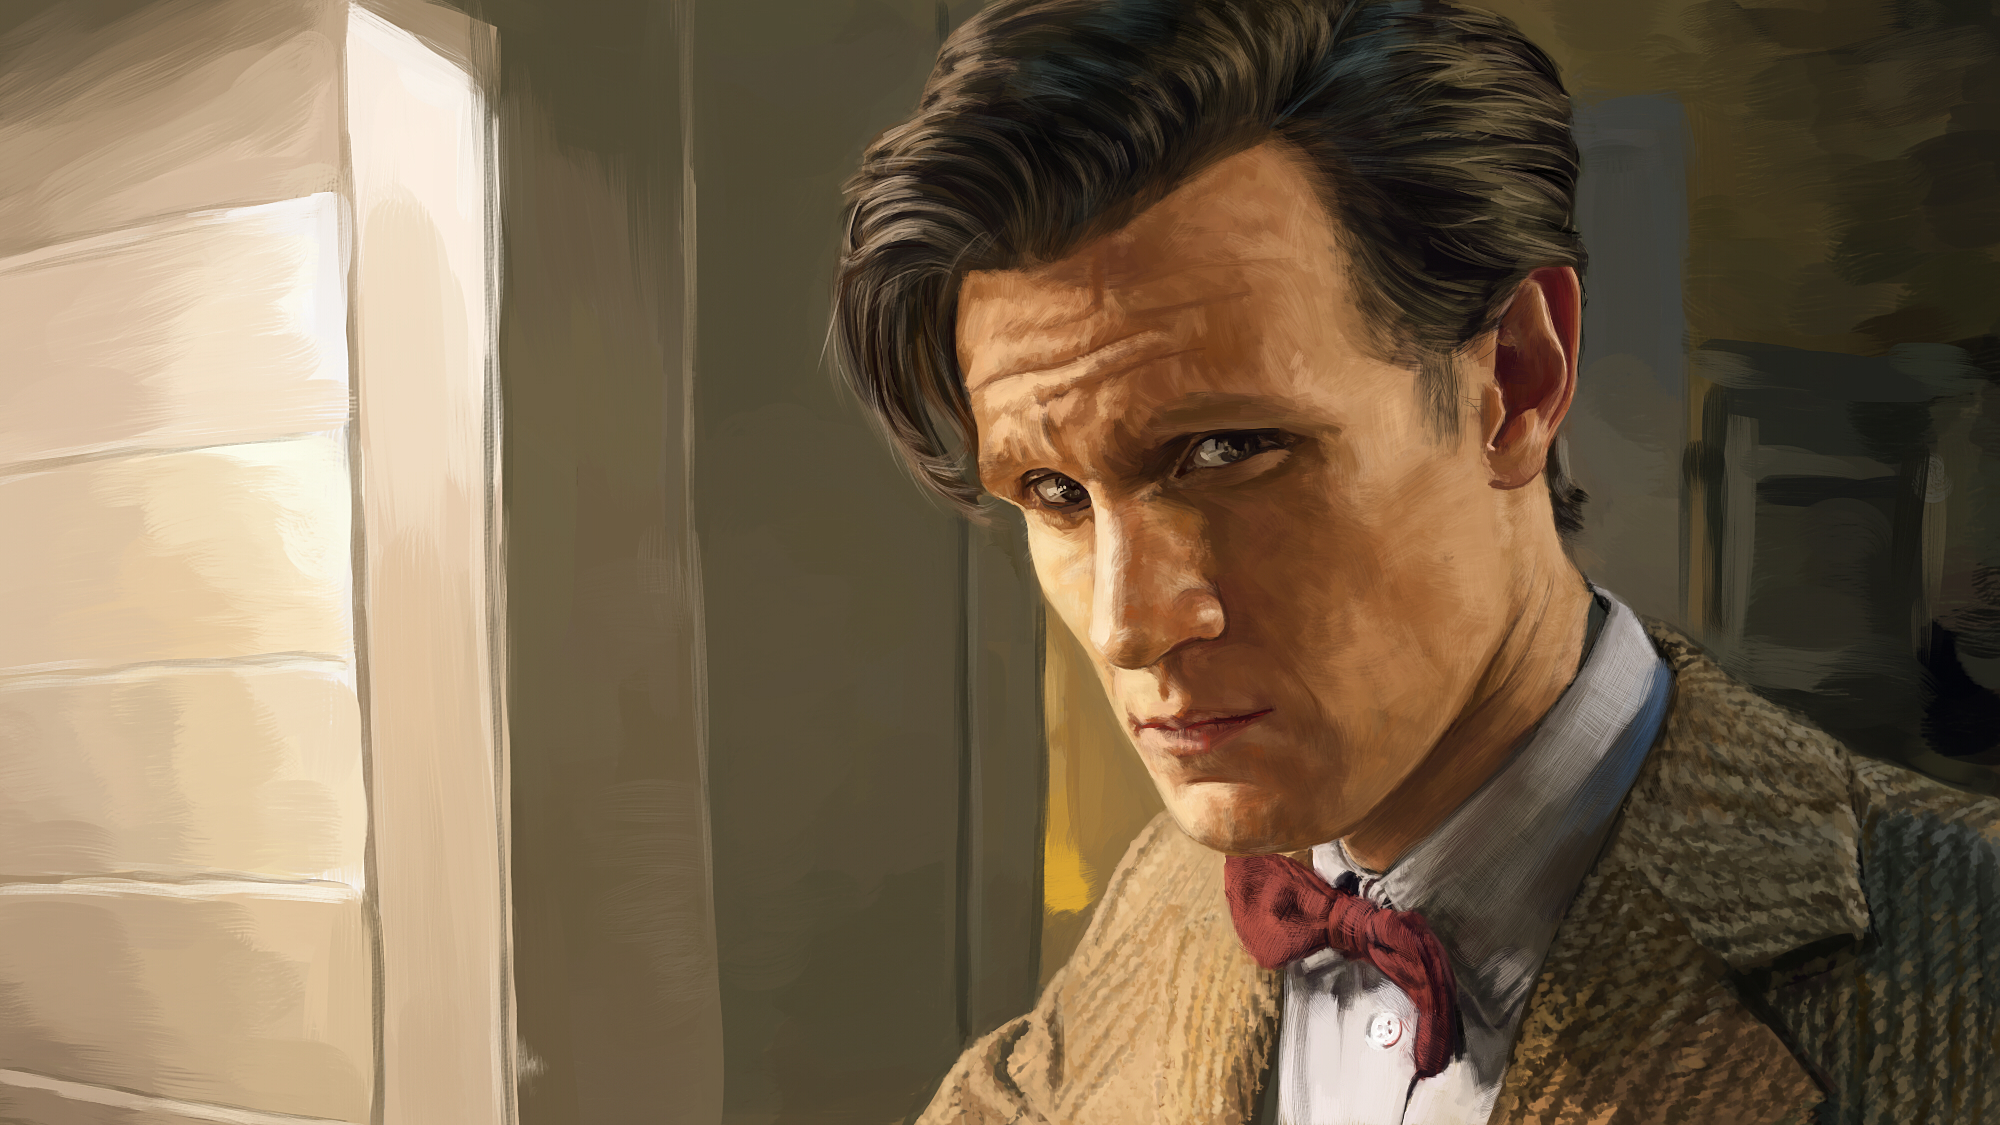 1024x768 Matt Smith Doctor Who 1024x768 Resolution Hd 4k Wallpapers Images Backgrounds Photos And Pictures